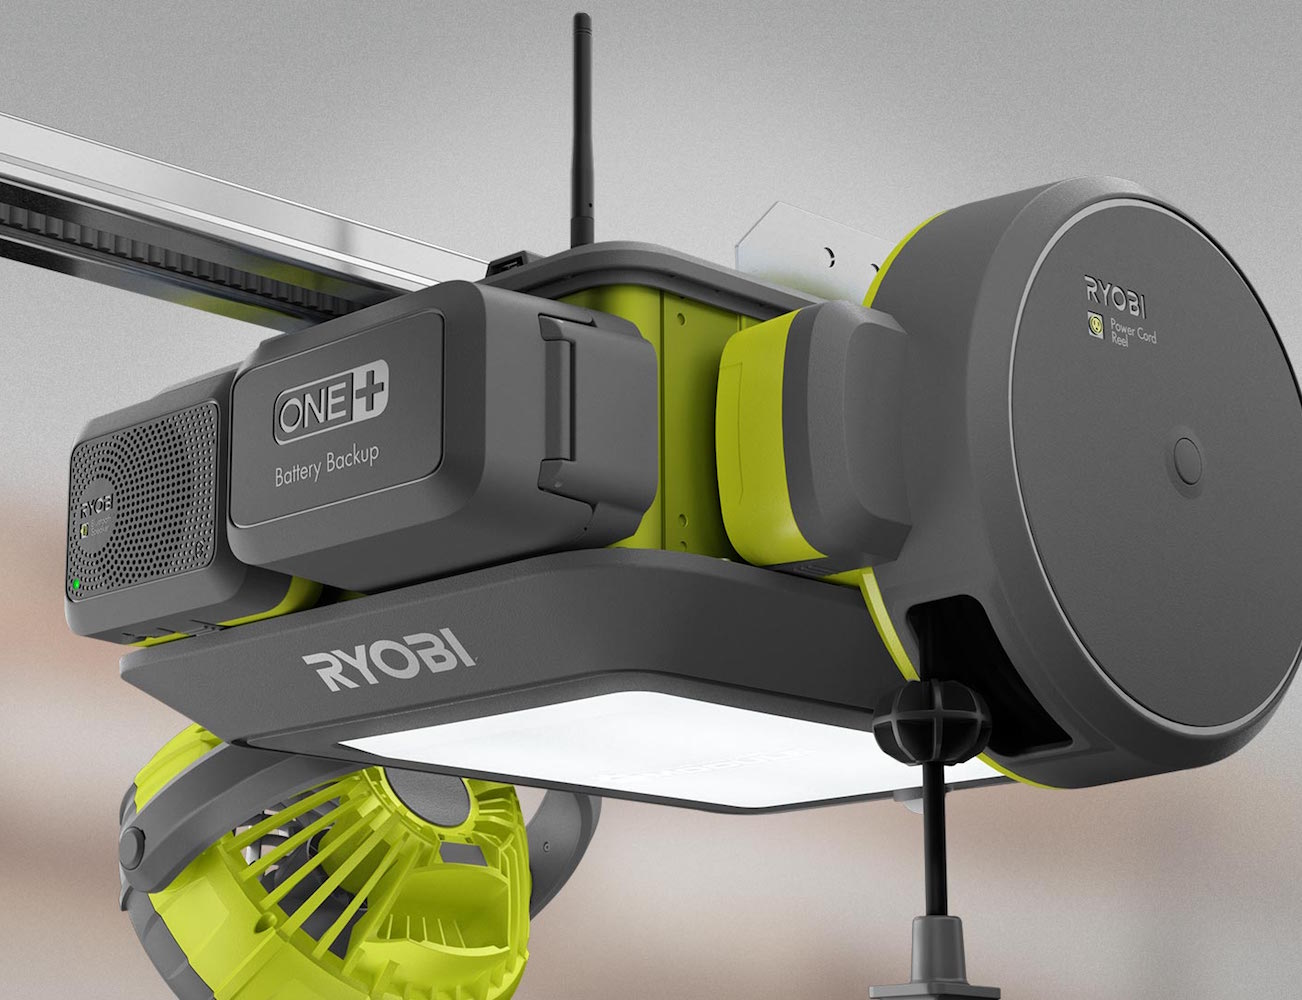 Ryobi Ultra Quiet Garage Door Opener 187 Gadget Flow